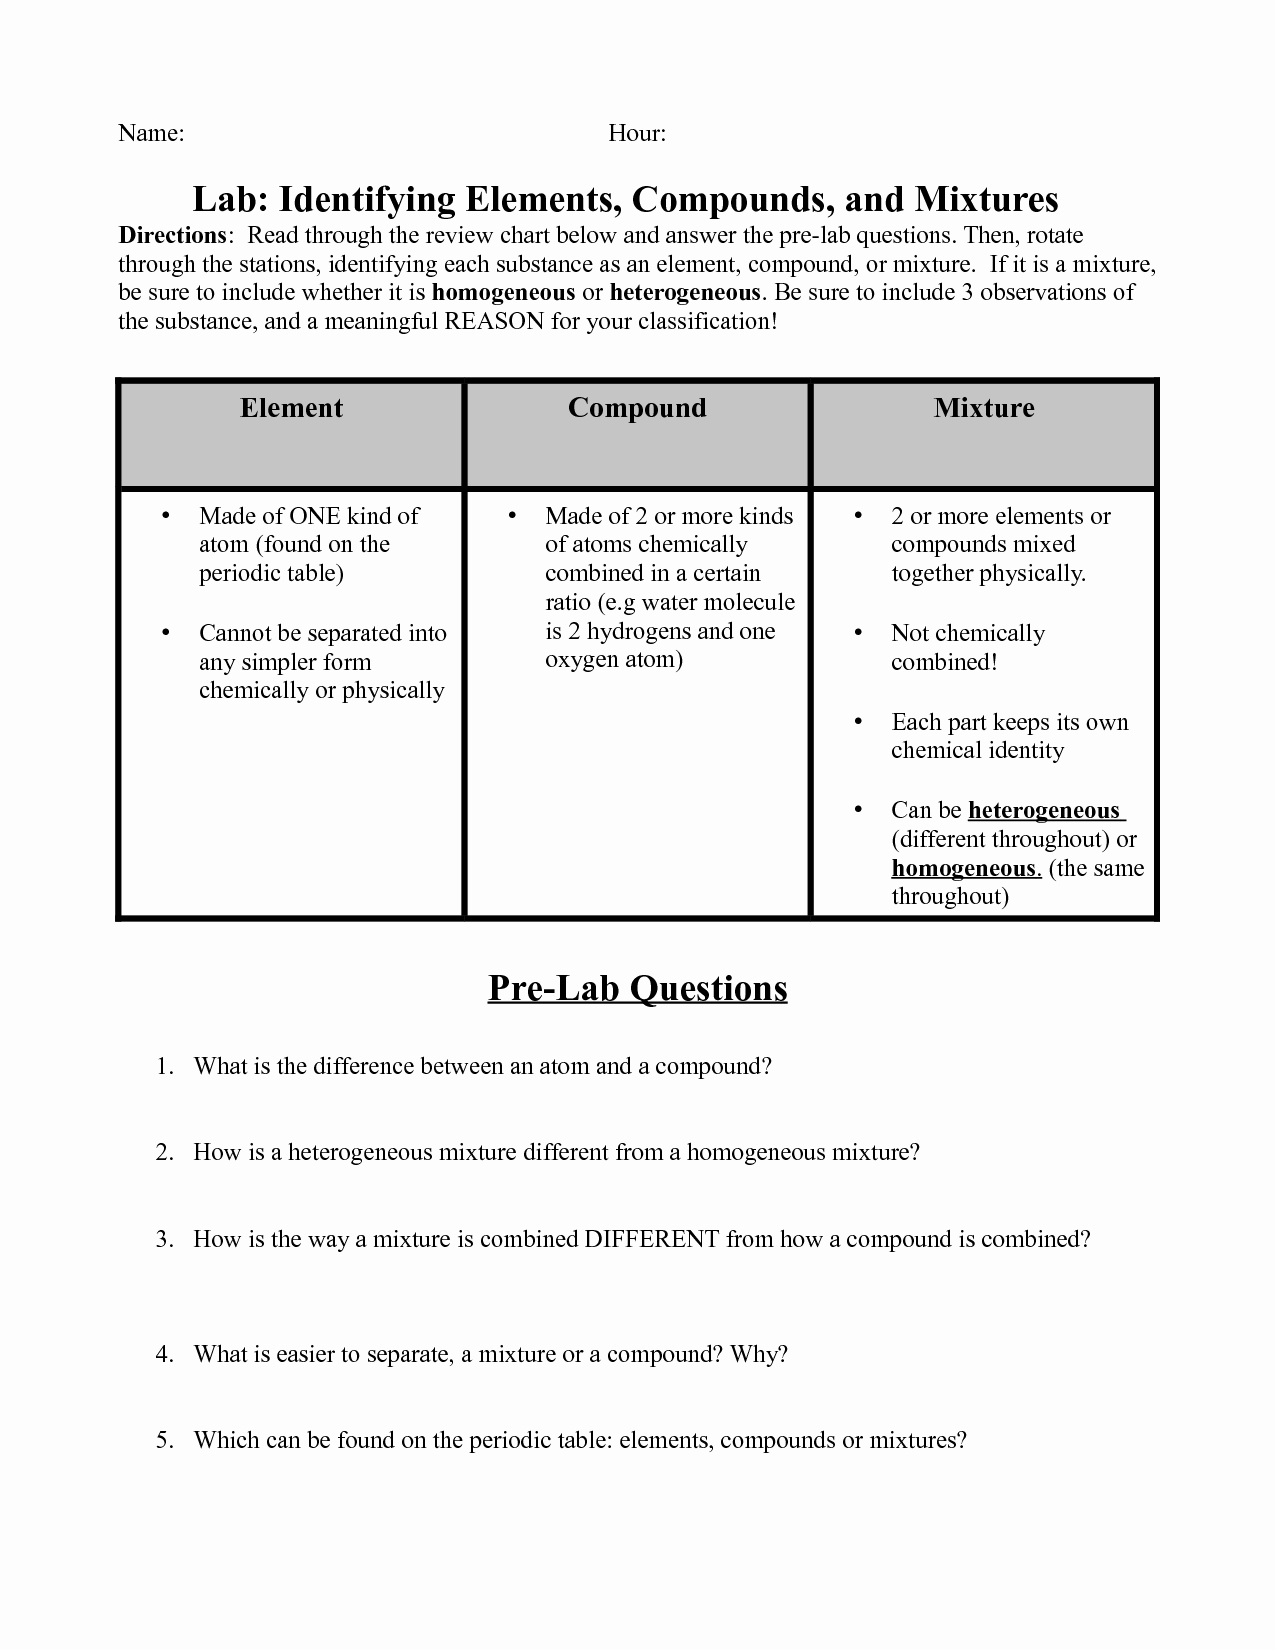 Mixtures Worksheet Answer Key Lovely 17 Best Of Elements Pounds and Mixtures